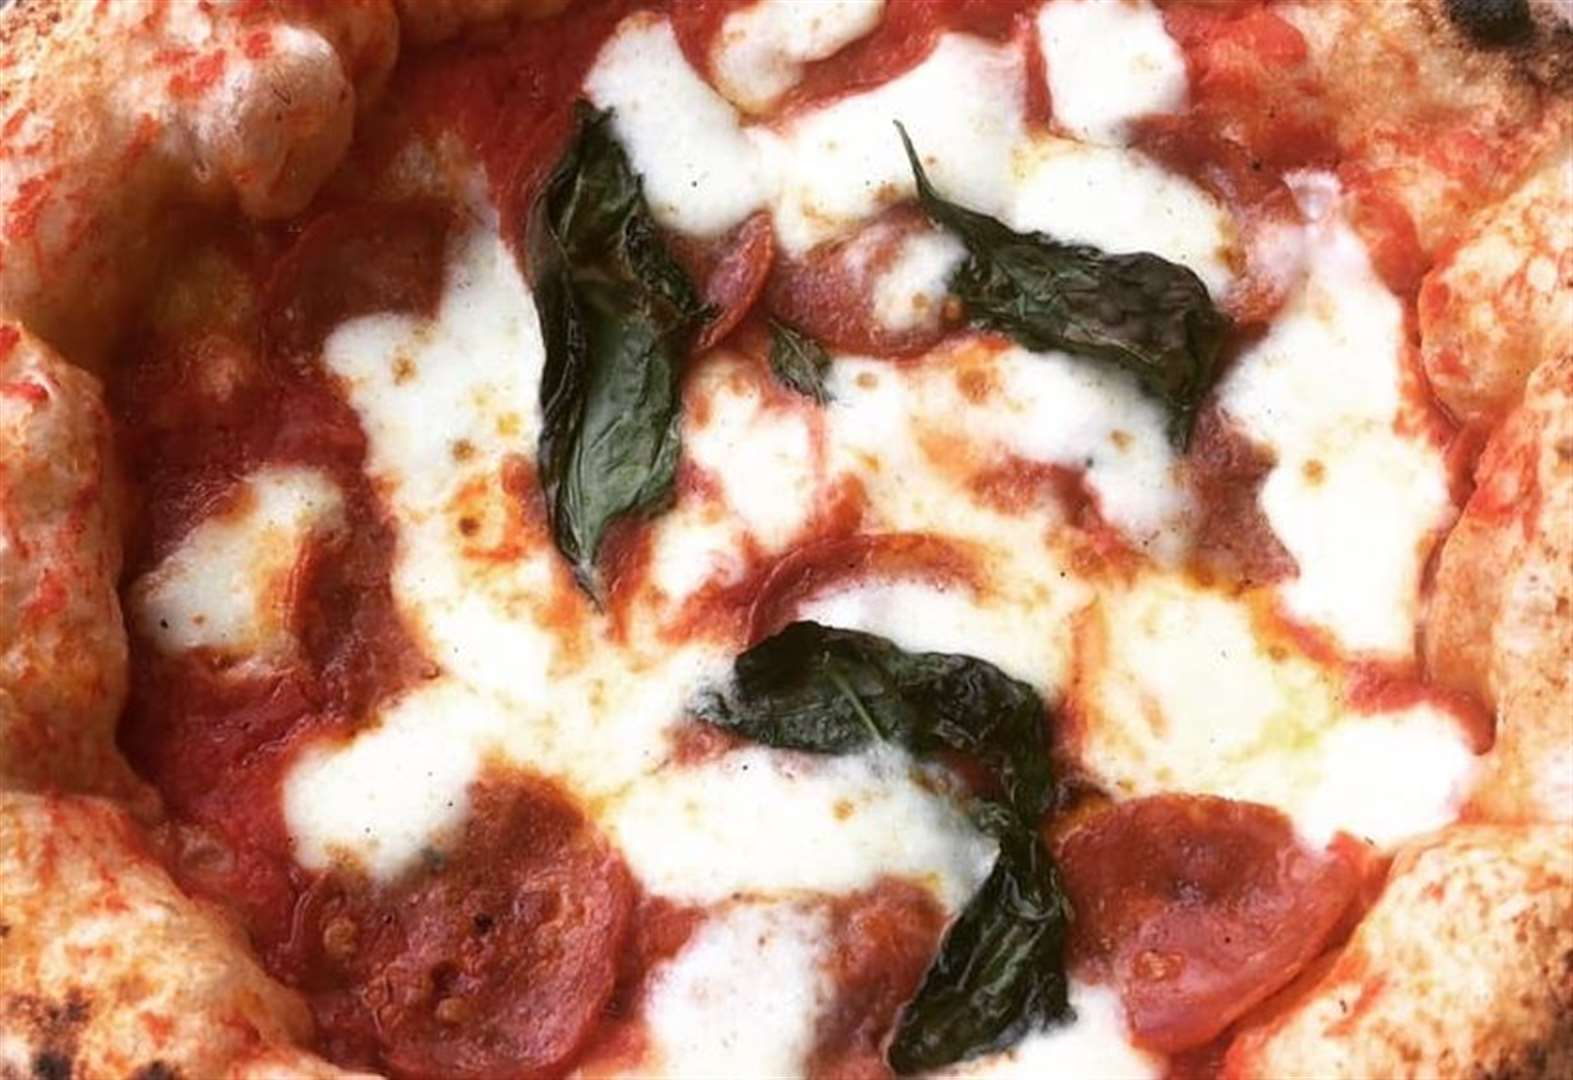 Popular pub to open authentic pizzeria